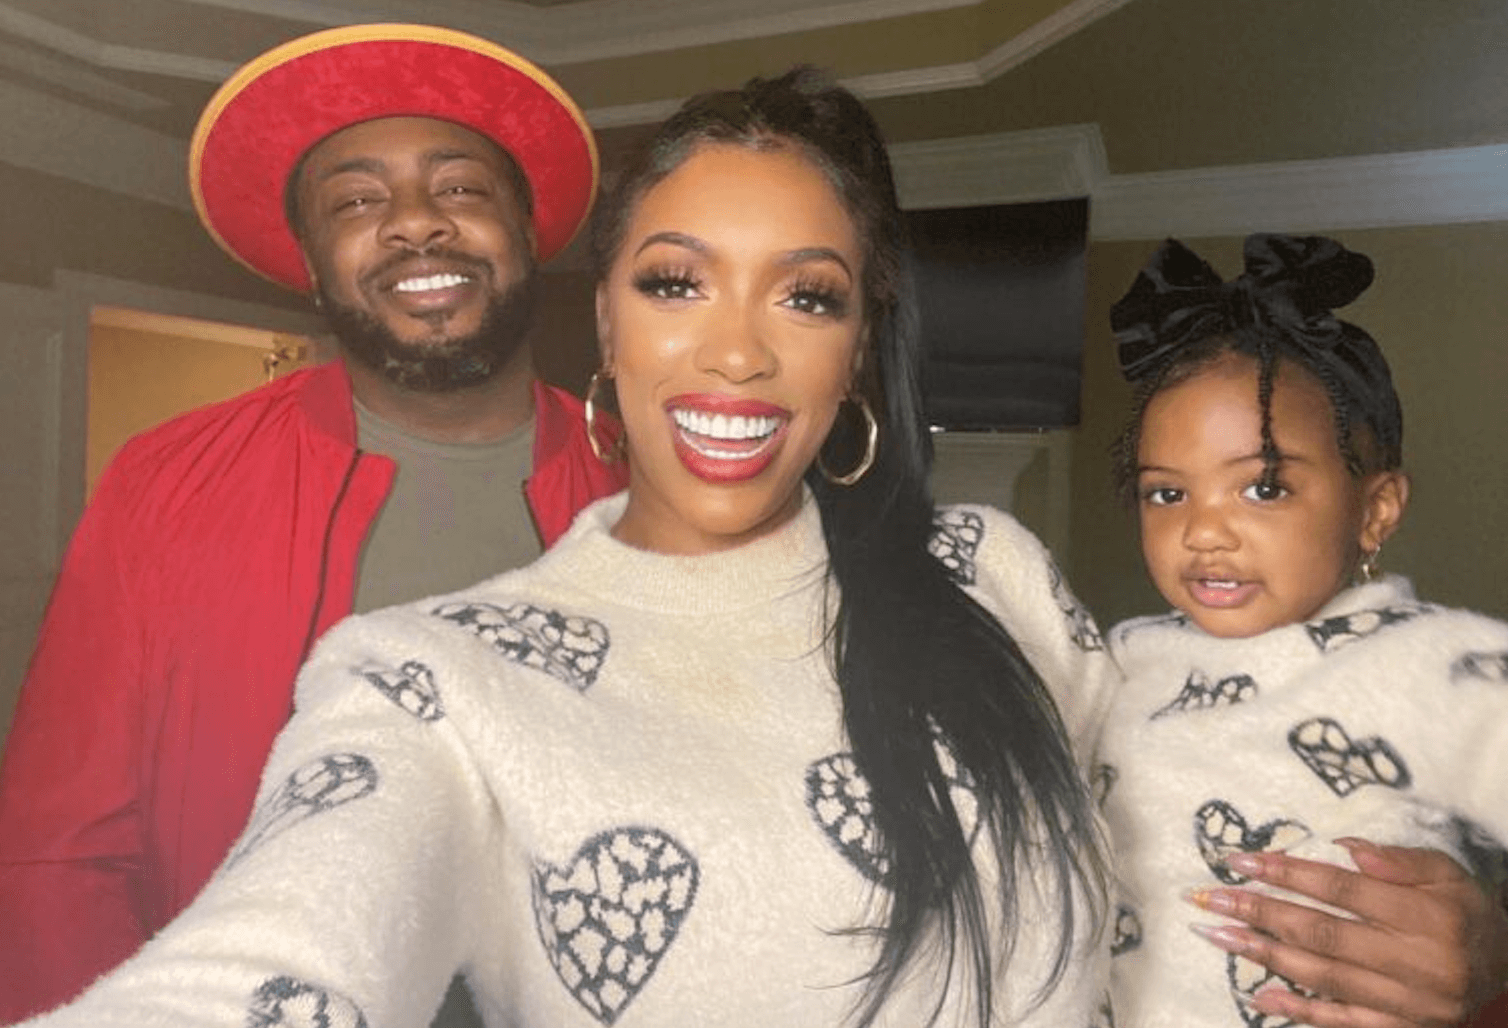 Porsha Williams Drops A Motivational Message About Life - Check It Out Here